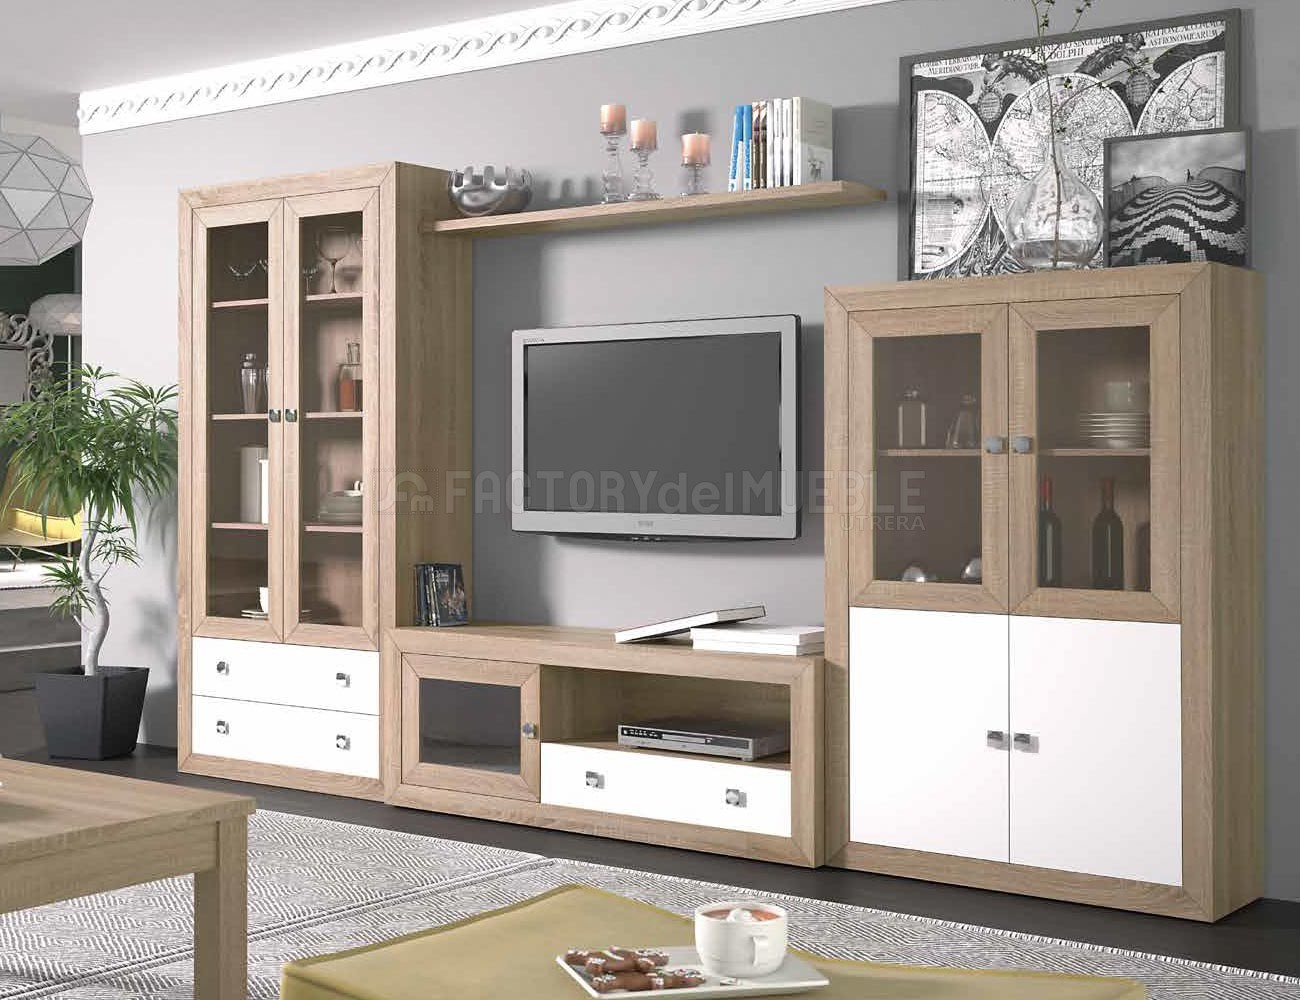 Mueble de salon colonial moderno en cambrian con blanco - Mueble salon moderno blanco ...